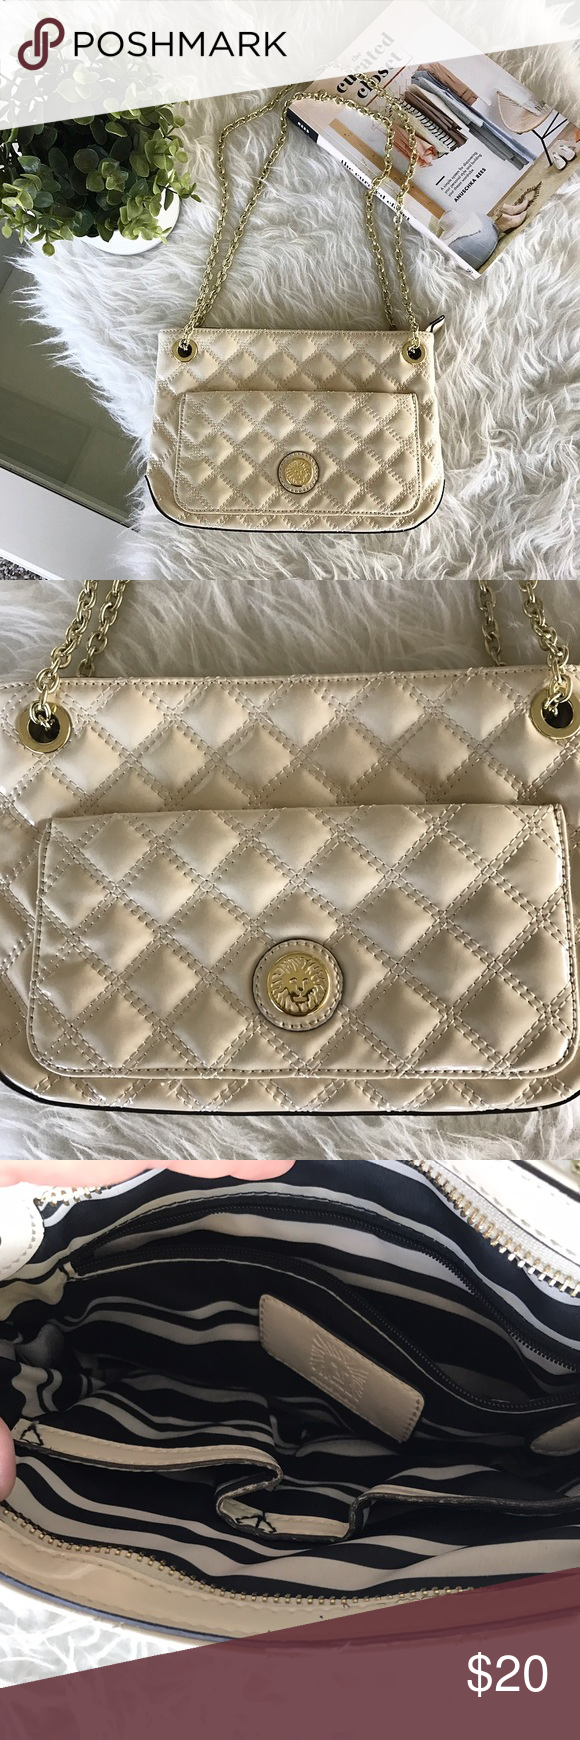 Anne Klein Quilted Purse Can also be used as a crossbody. Small mark on backside (shown in pics). Man made material. Anne Klein Bags